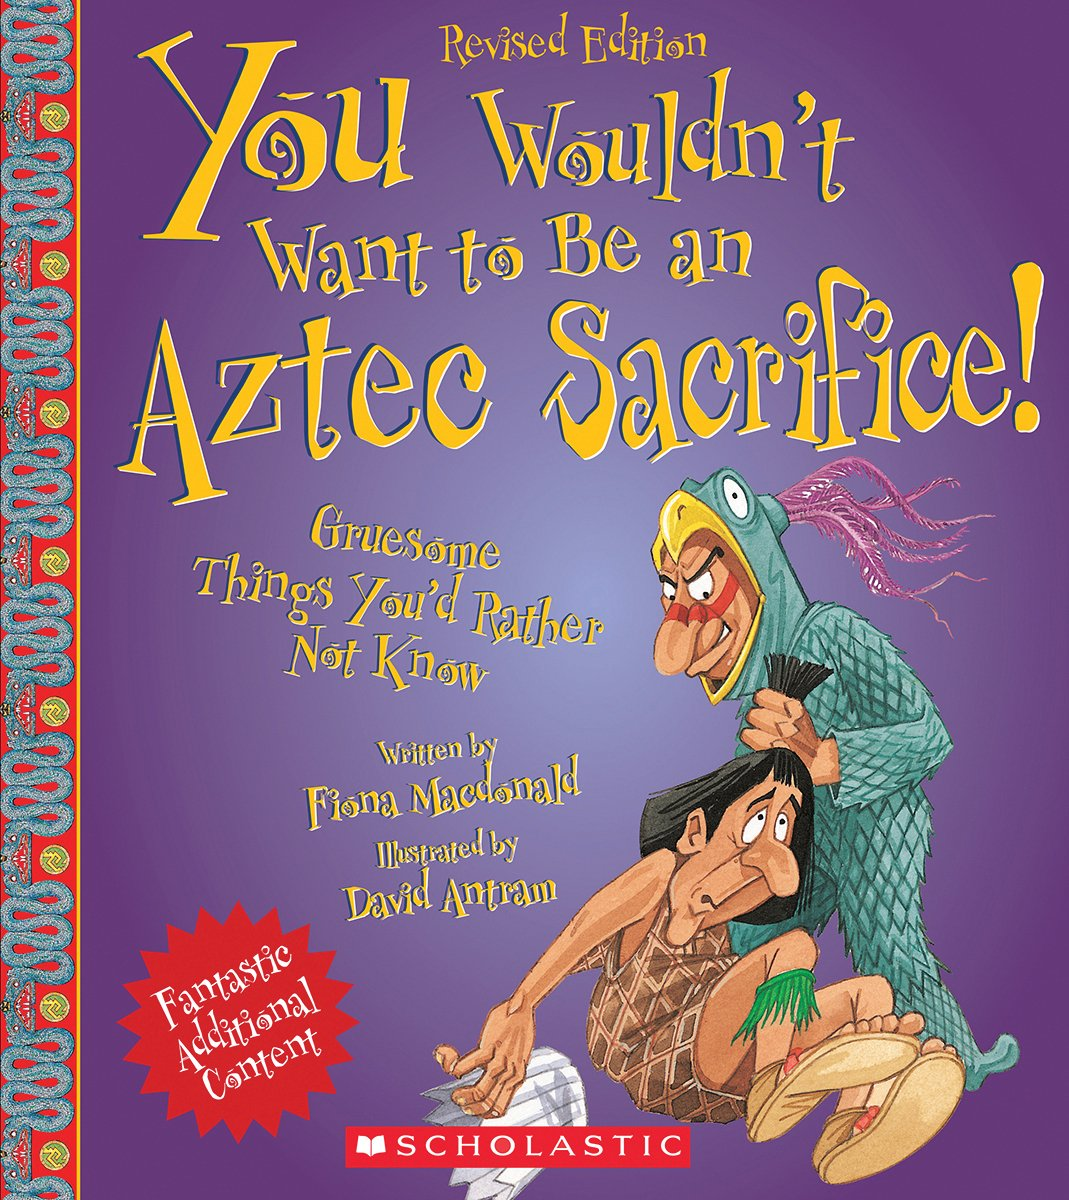 You Wouldn't Want to Be an Aztec Sacrifice (Revised Edition)